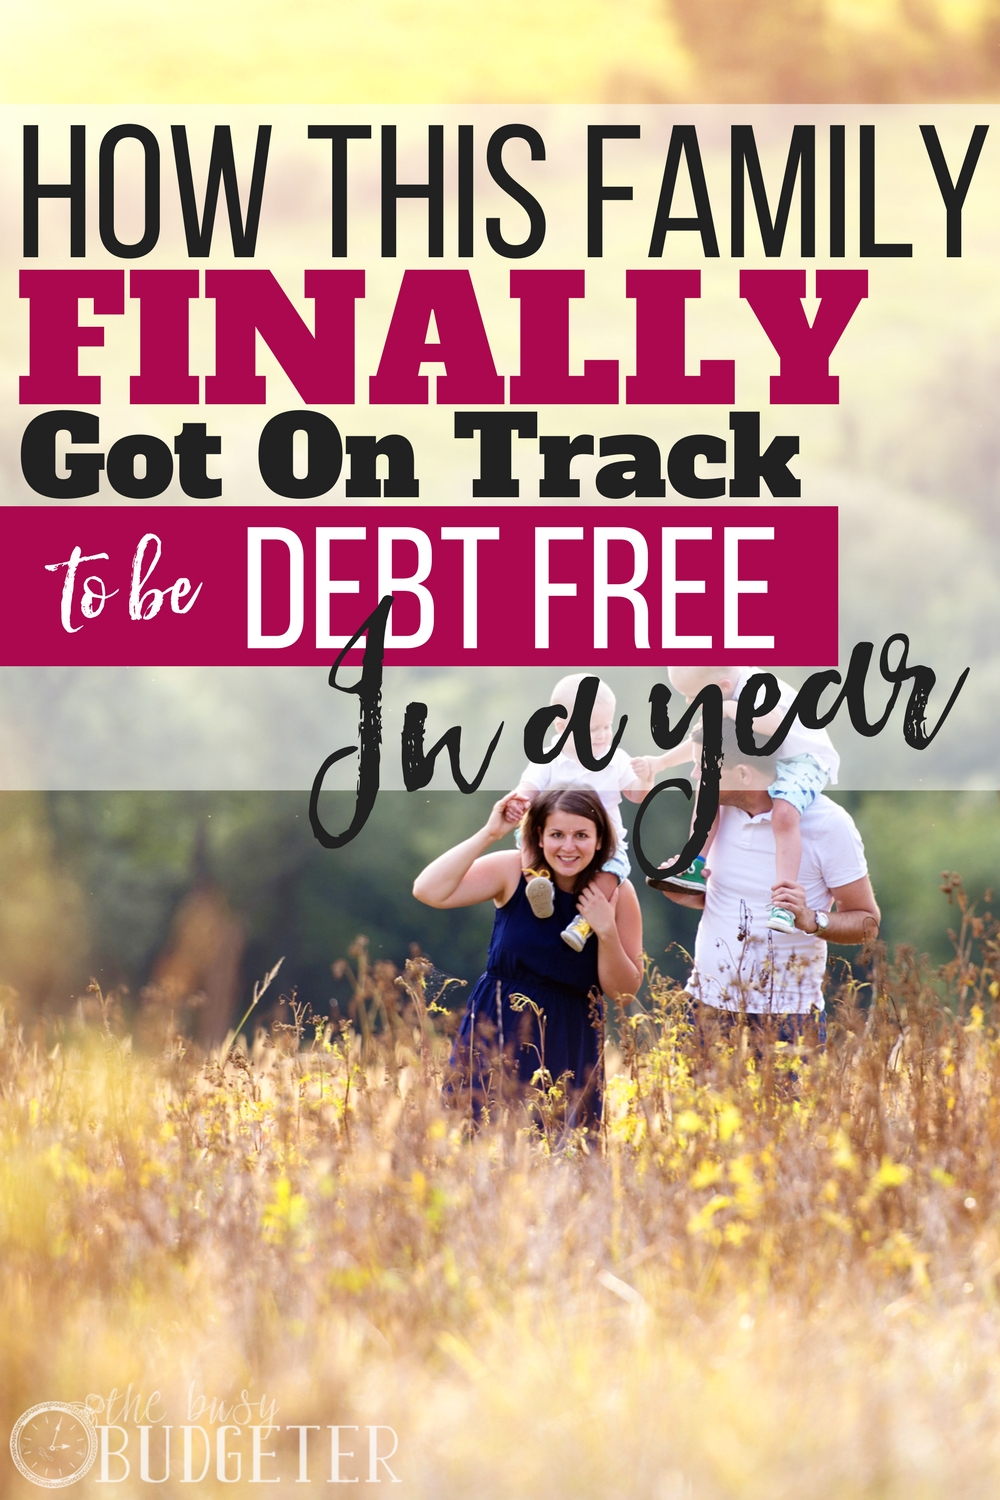 This article really made me think about my money habits and how spending on seemingly small things can really add up. Making simple changes has helped us stay on budget and we are hoping to get on track to be debt free just like this family!